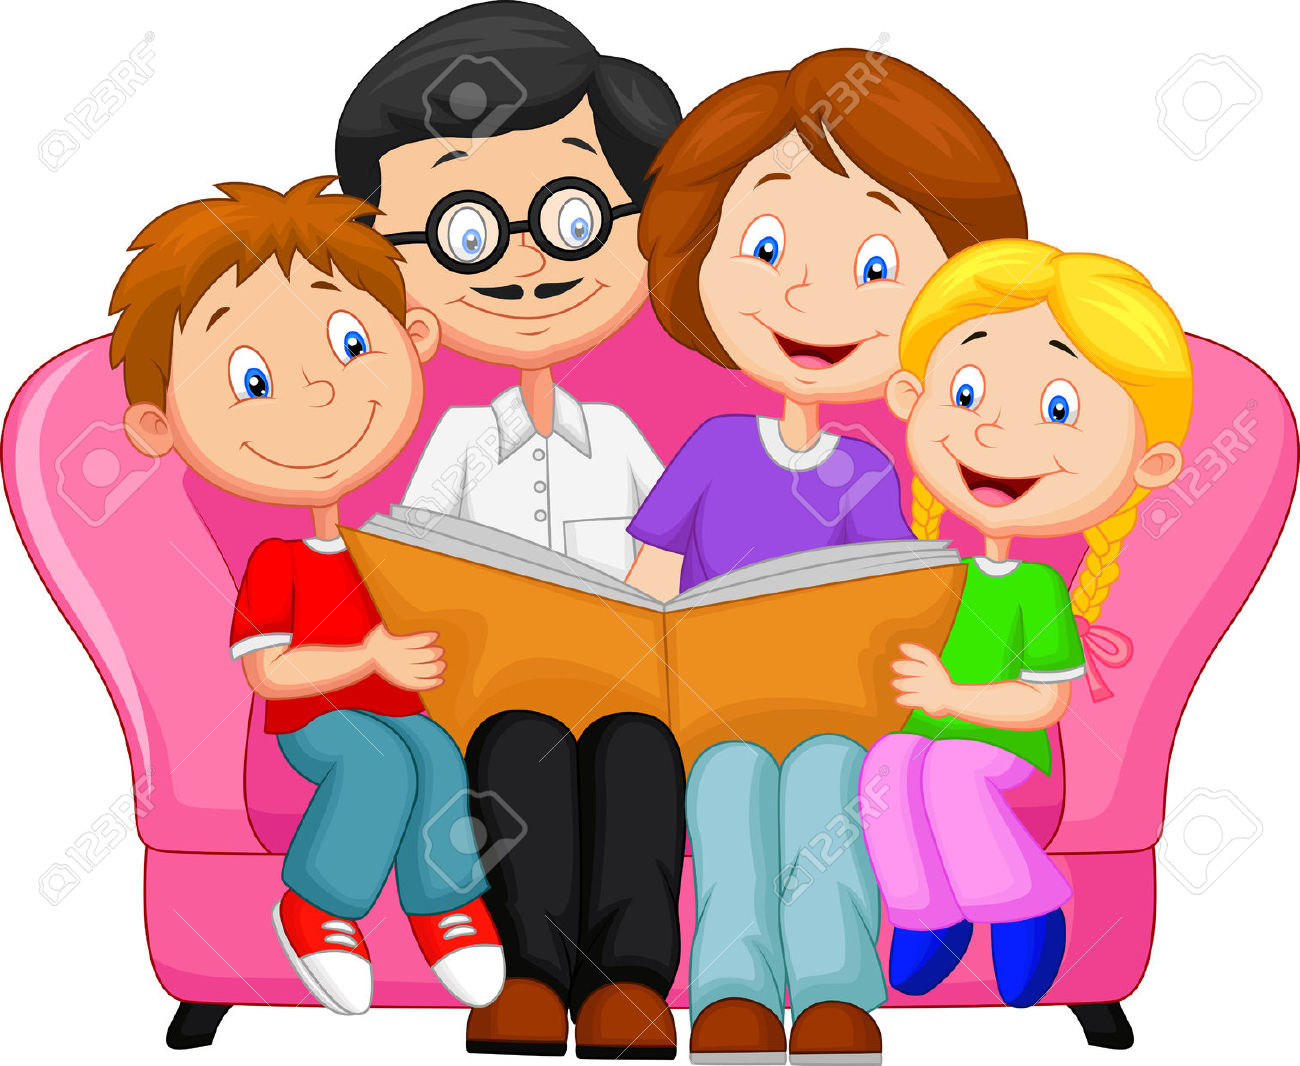 clipart family reading together - photo #10